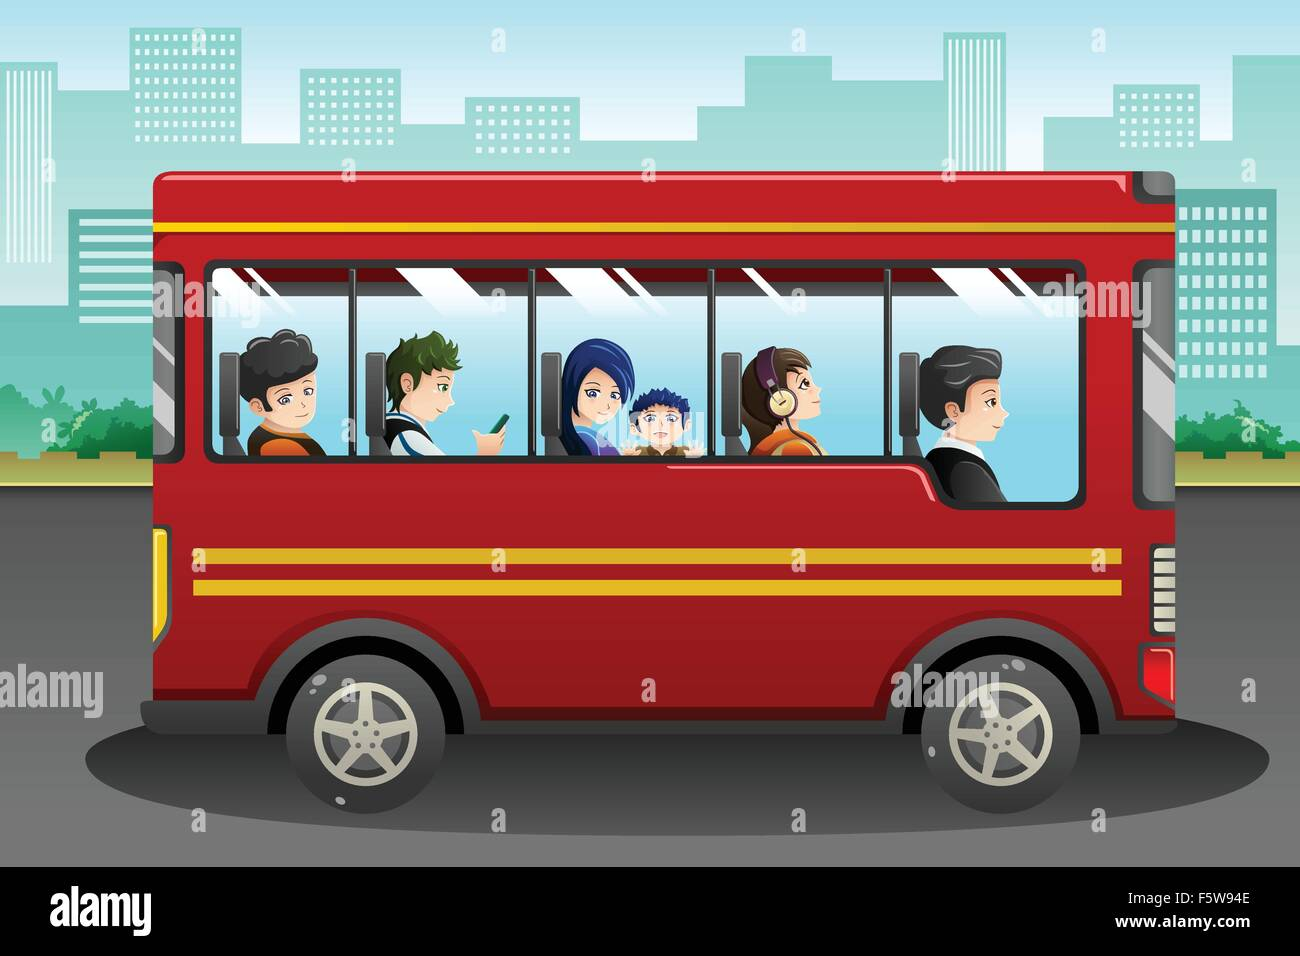 A vector illustration of different people riding a bus - Stock Image